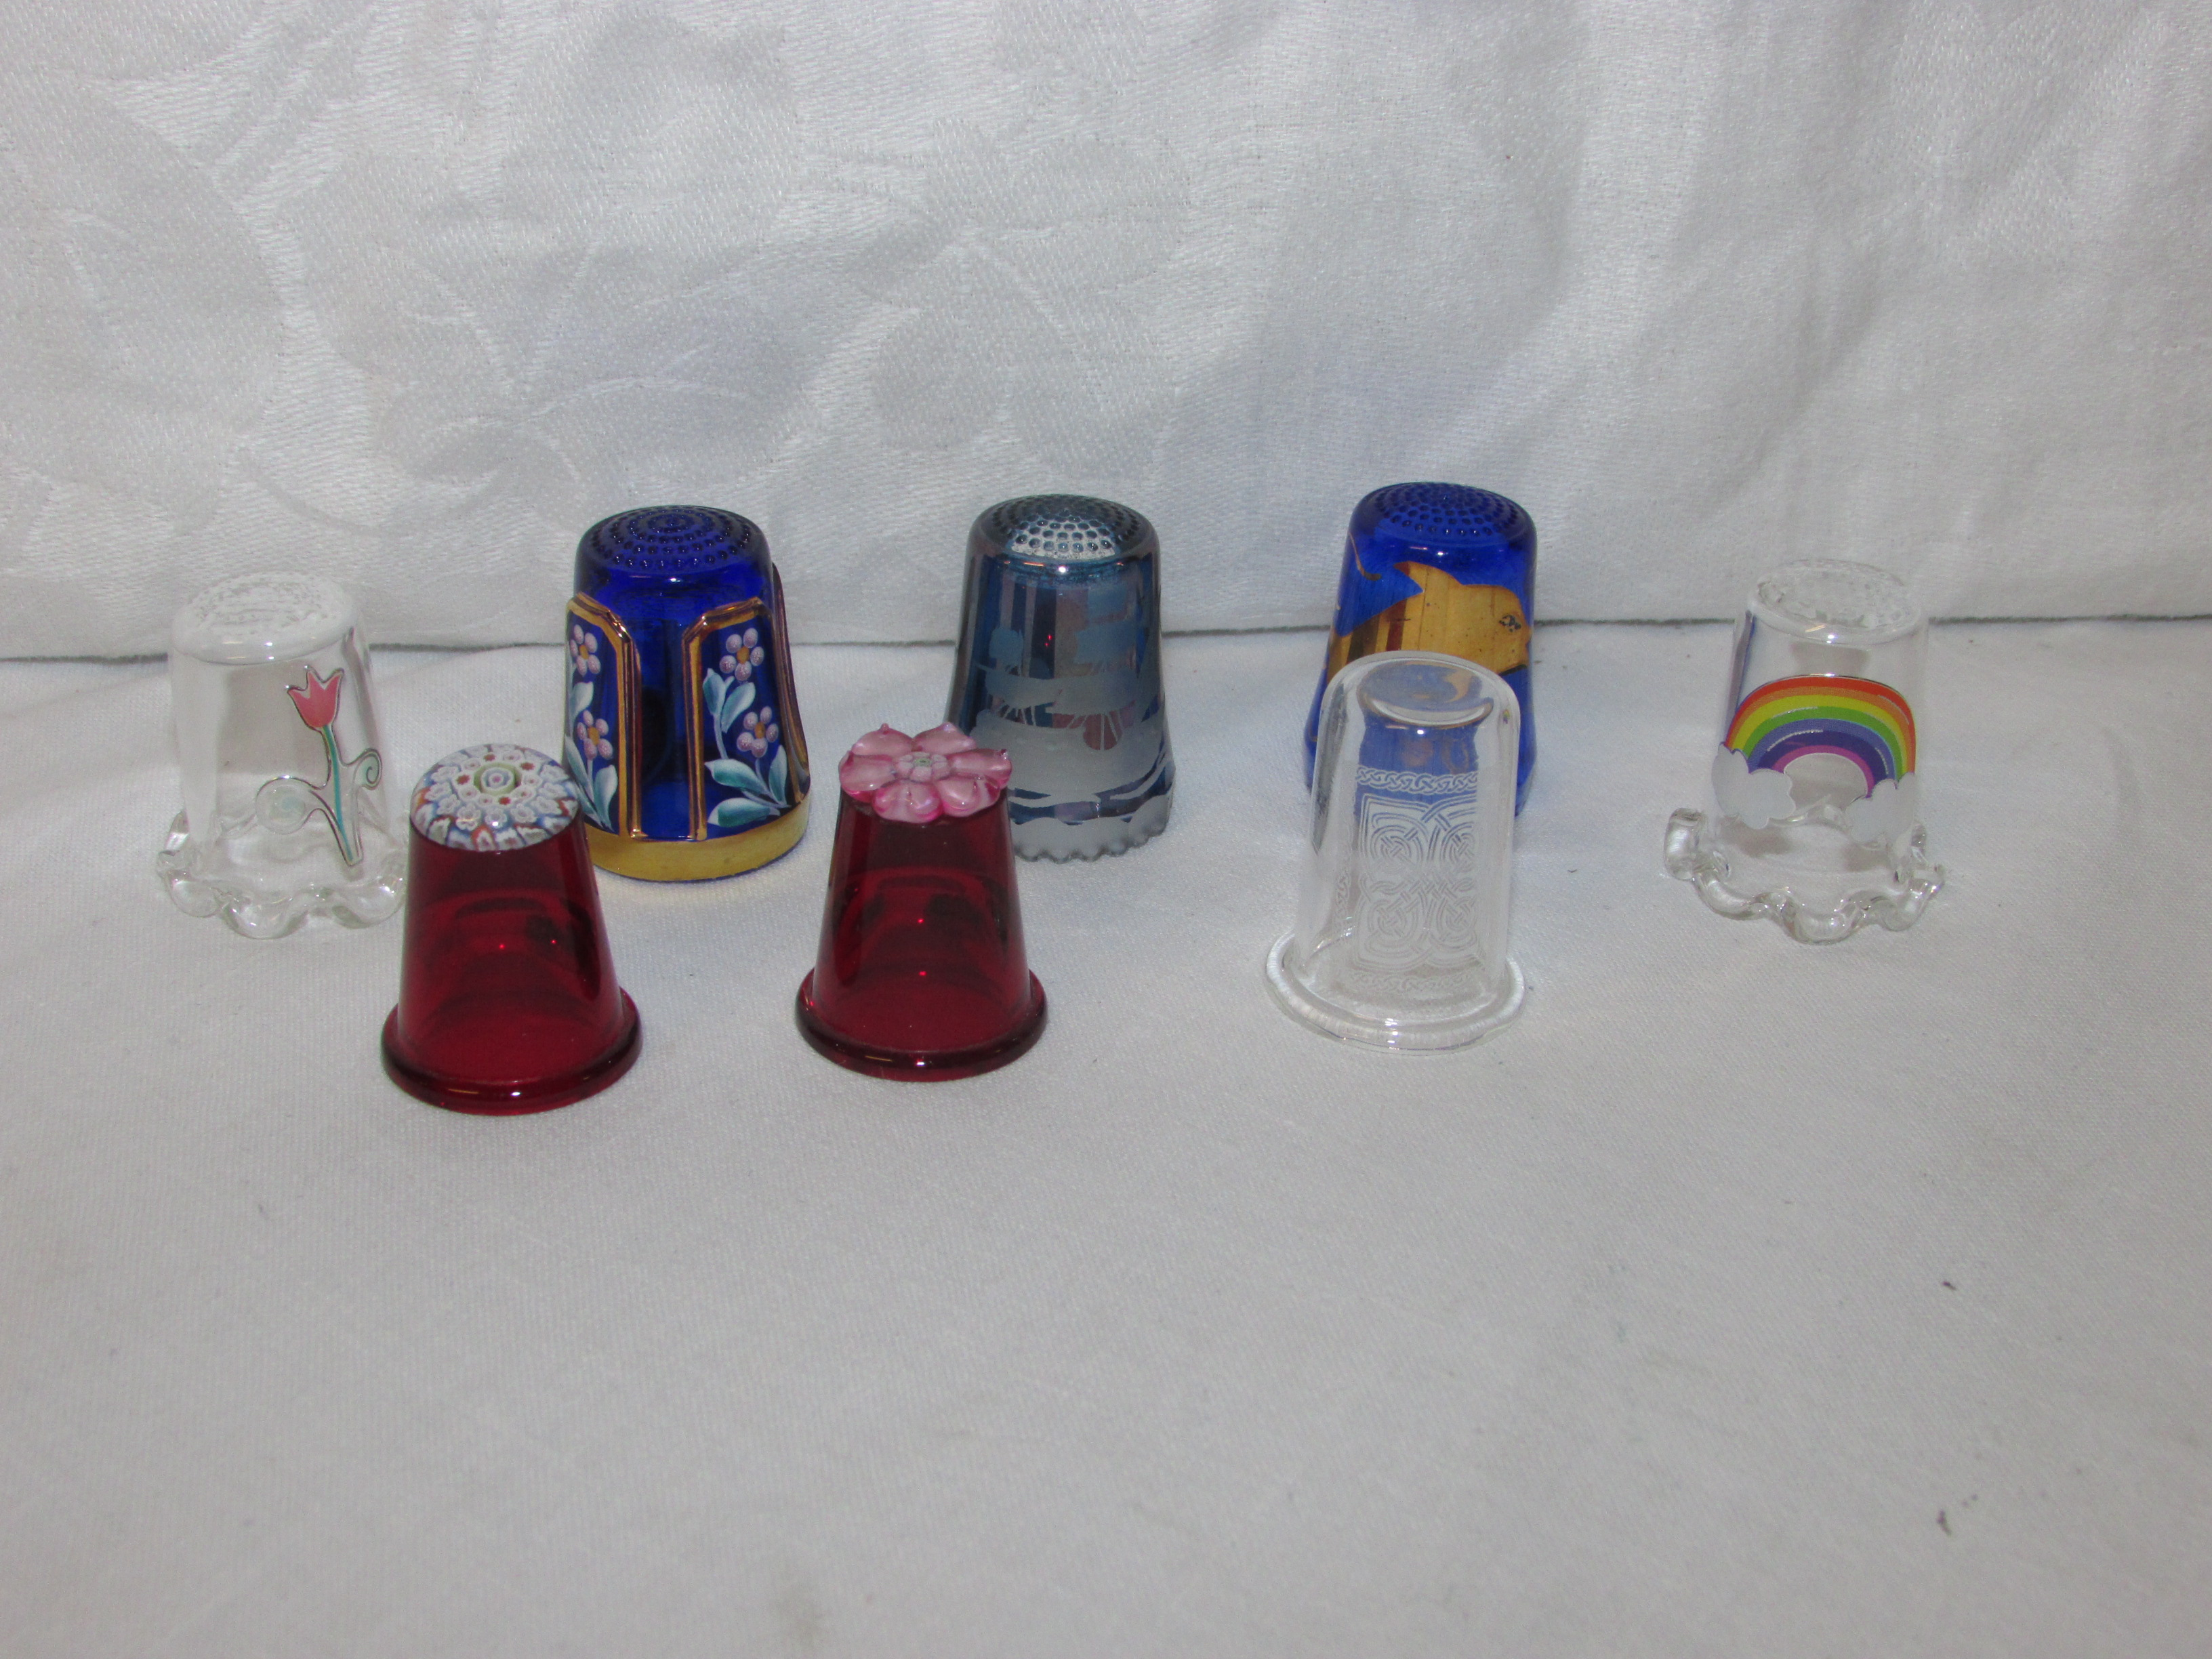 Lot 81 - EIGHT GLASS THIMBLES - two red glass with cane work ends, three blue glass, and three clear glass